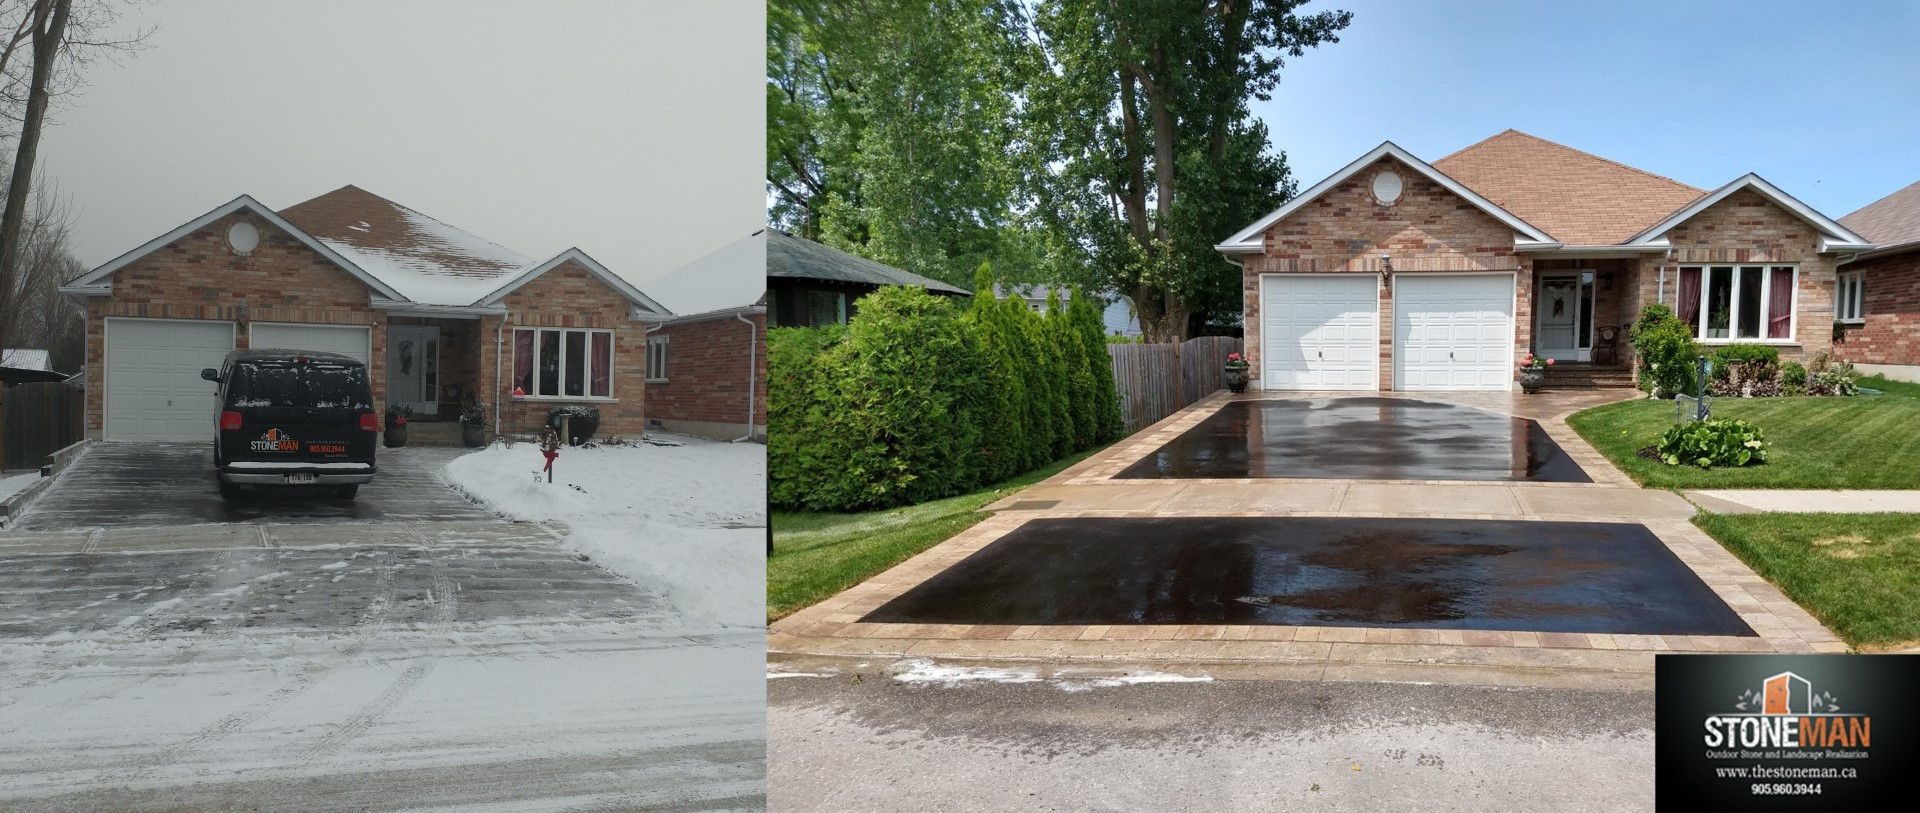 Driveway banding and front entrance